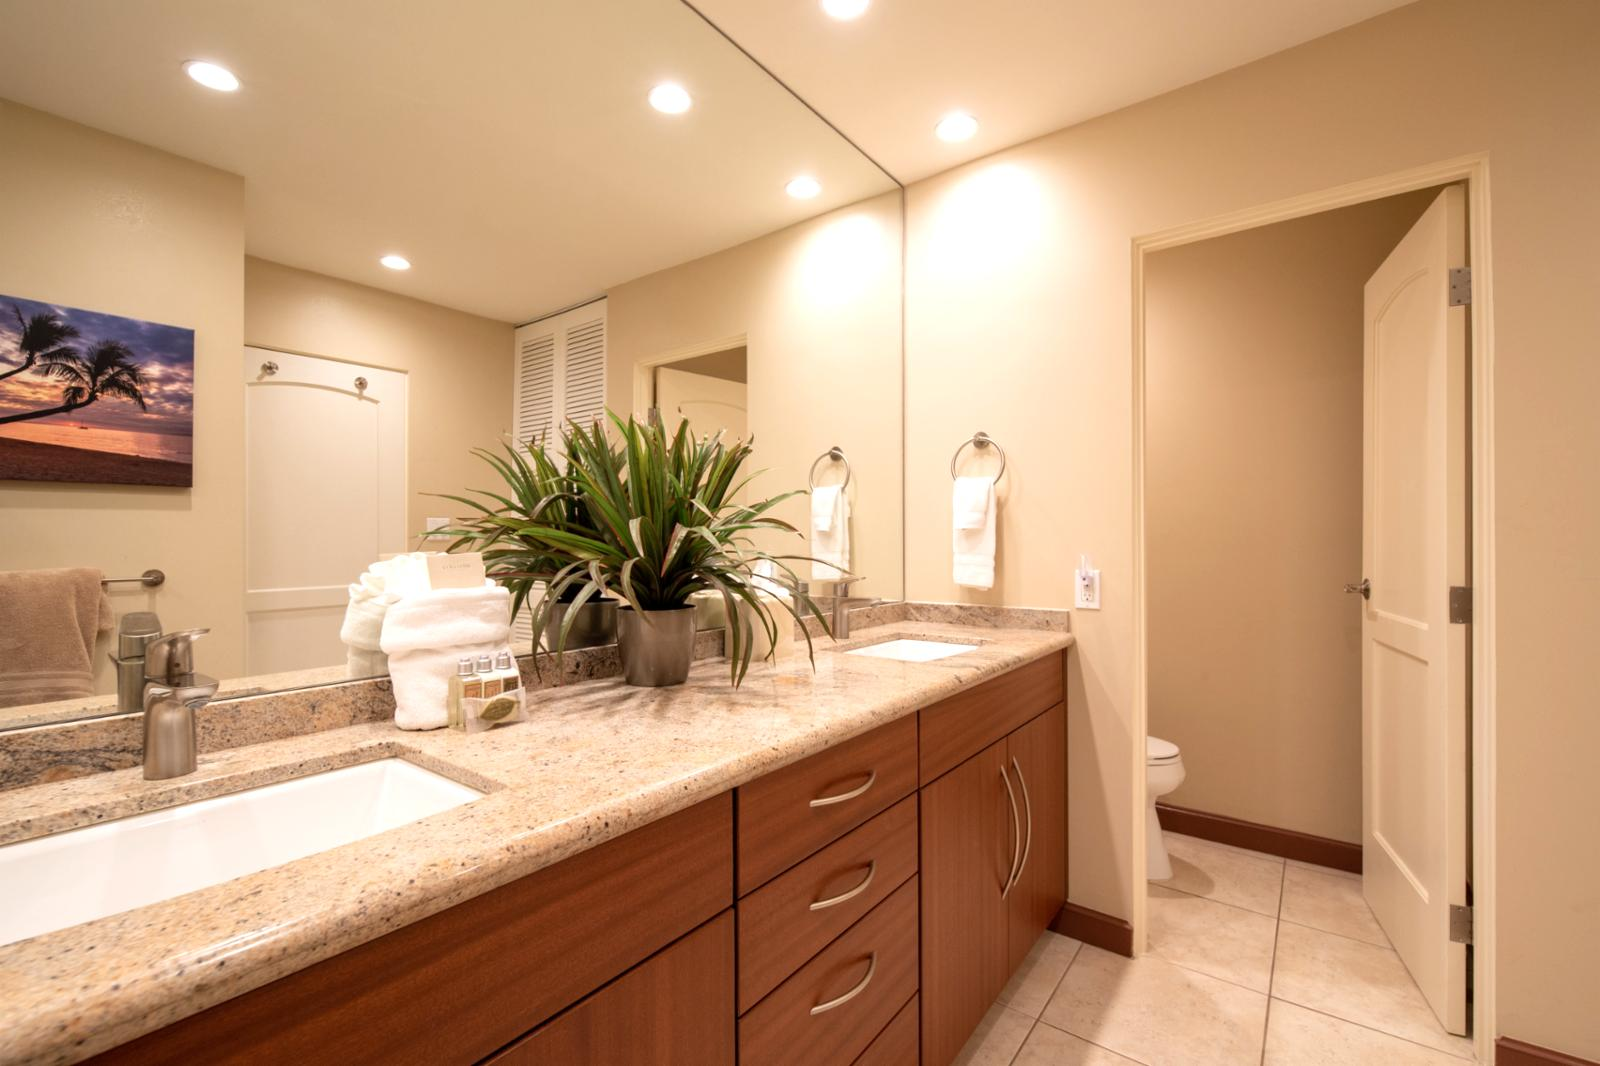 Custom countertops and private access to the guest bath